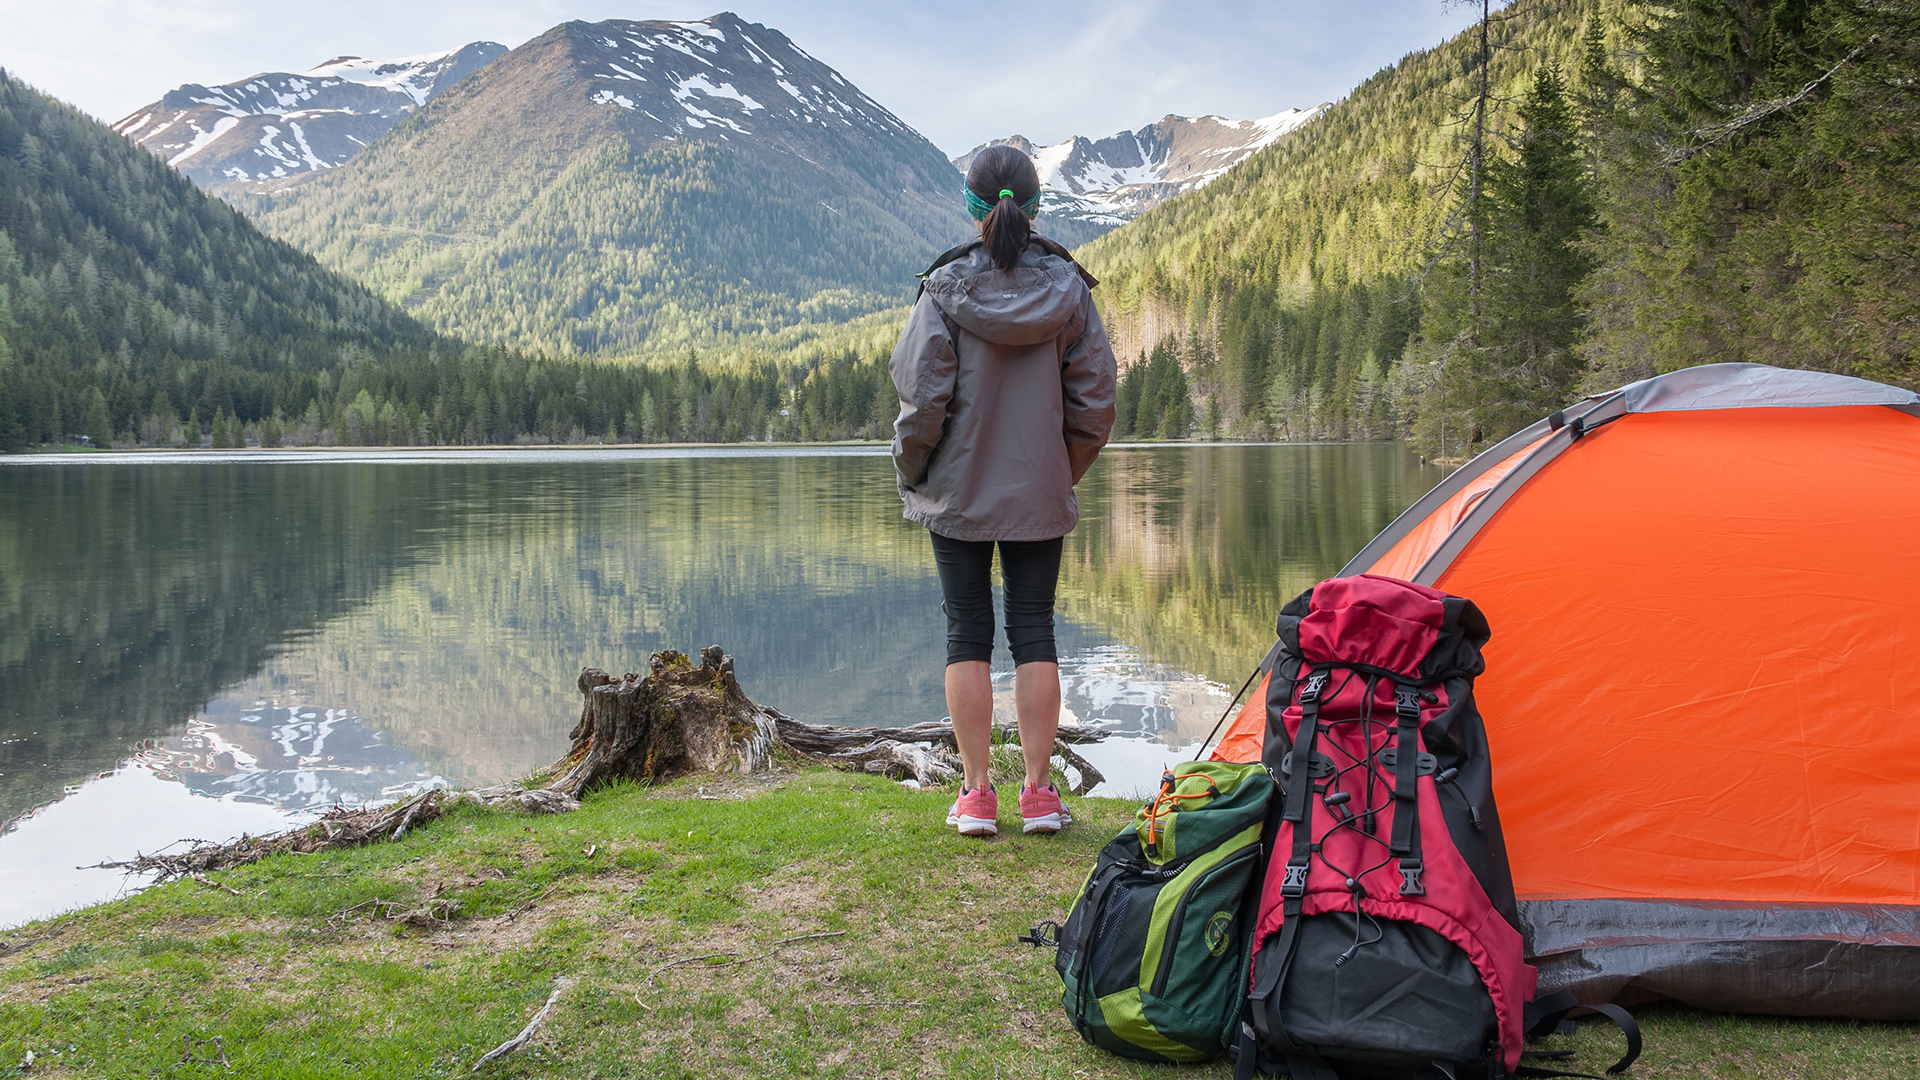 Camper Pick Up >> Camping gear you need to pick up before braving nature - TODAY.com